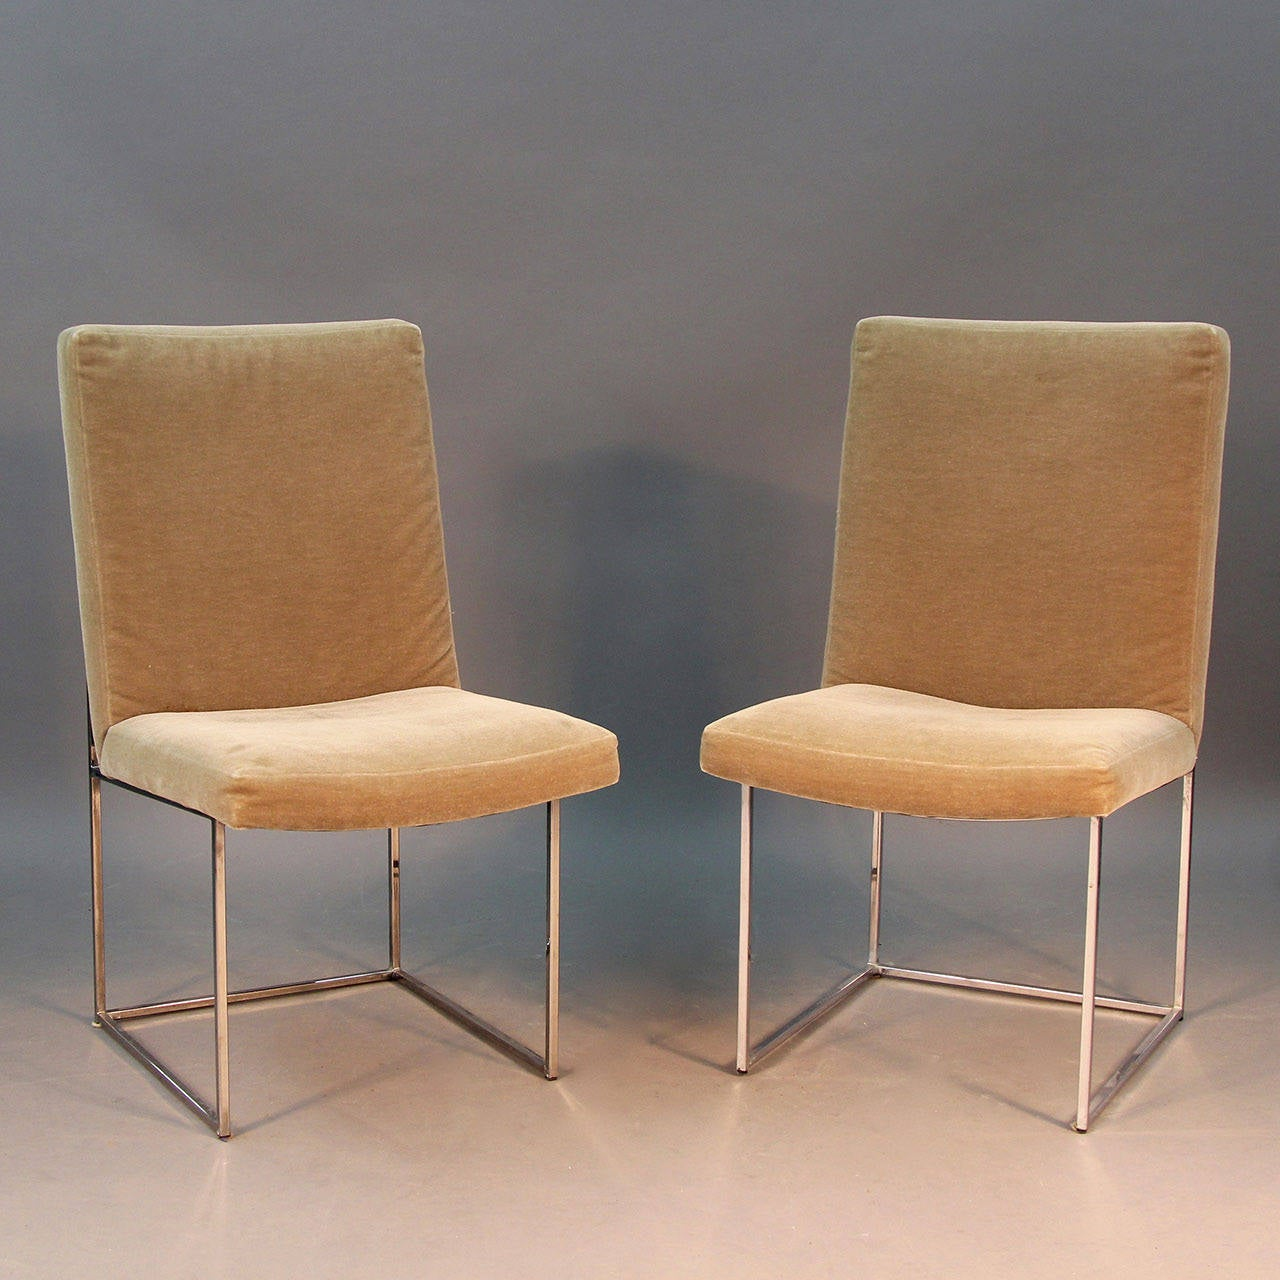 Set Of Six Donghia Dining Chairs With Sleek Chrome Frame And Mohair Upholstery 2